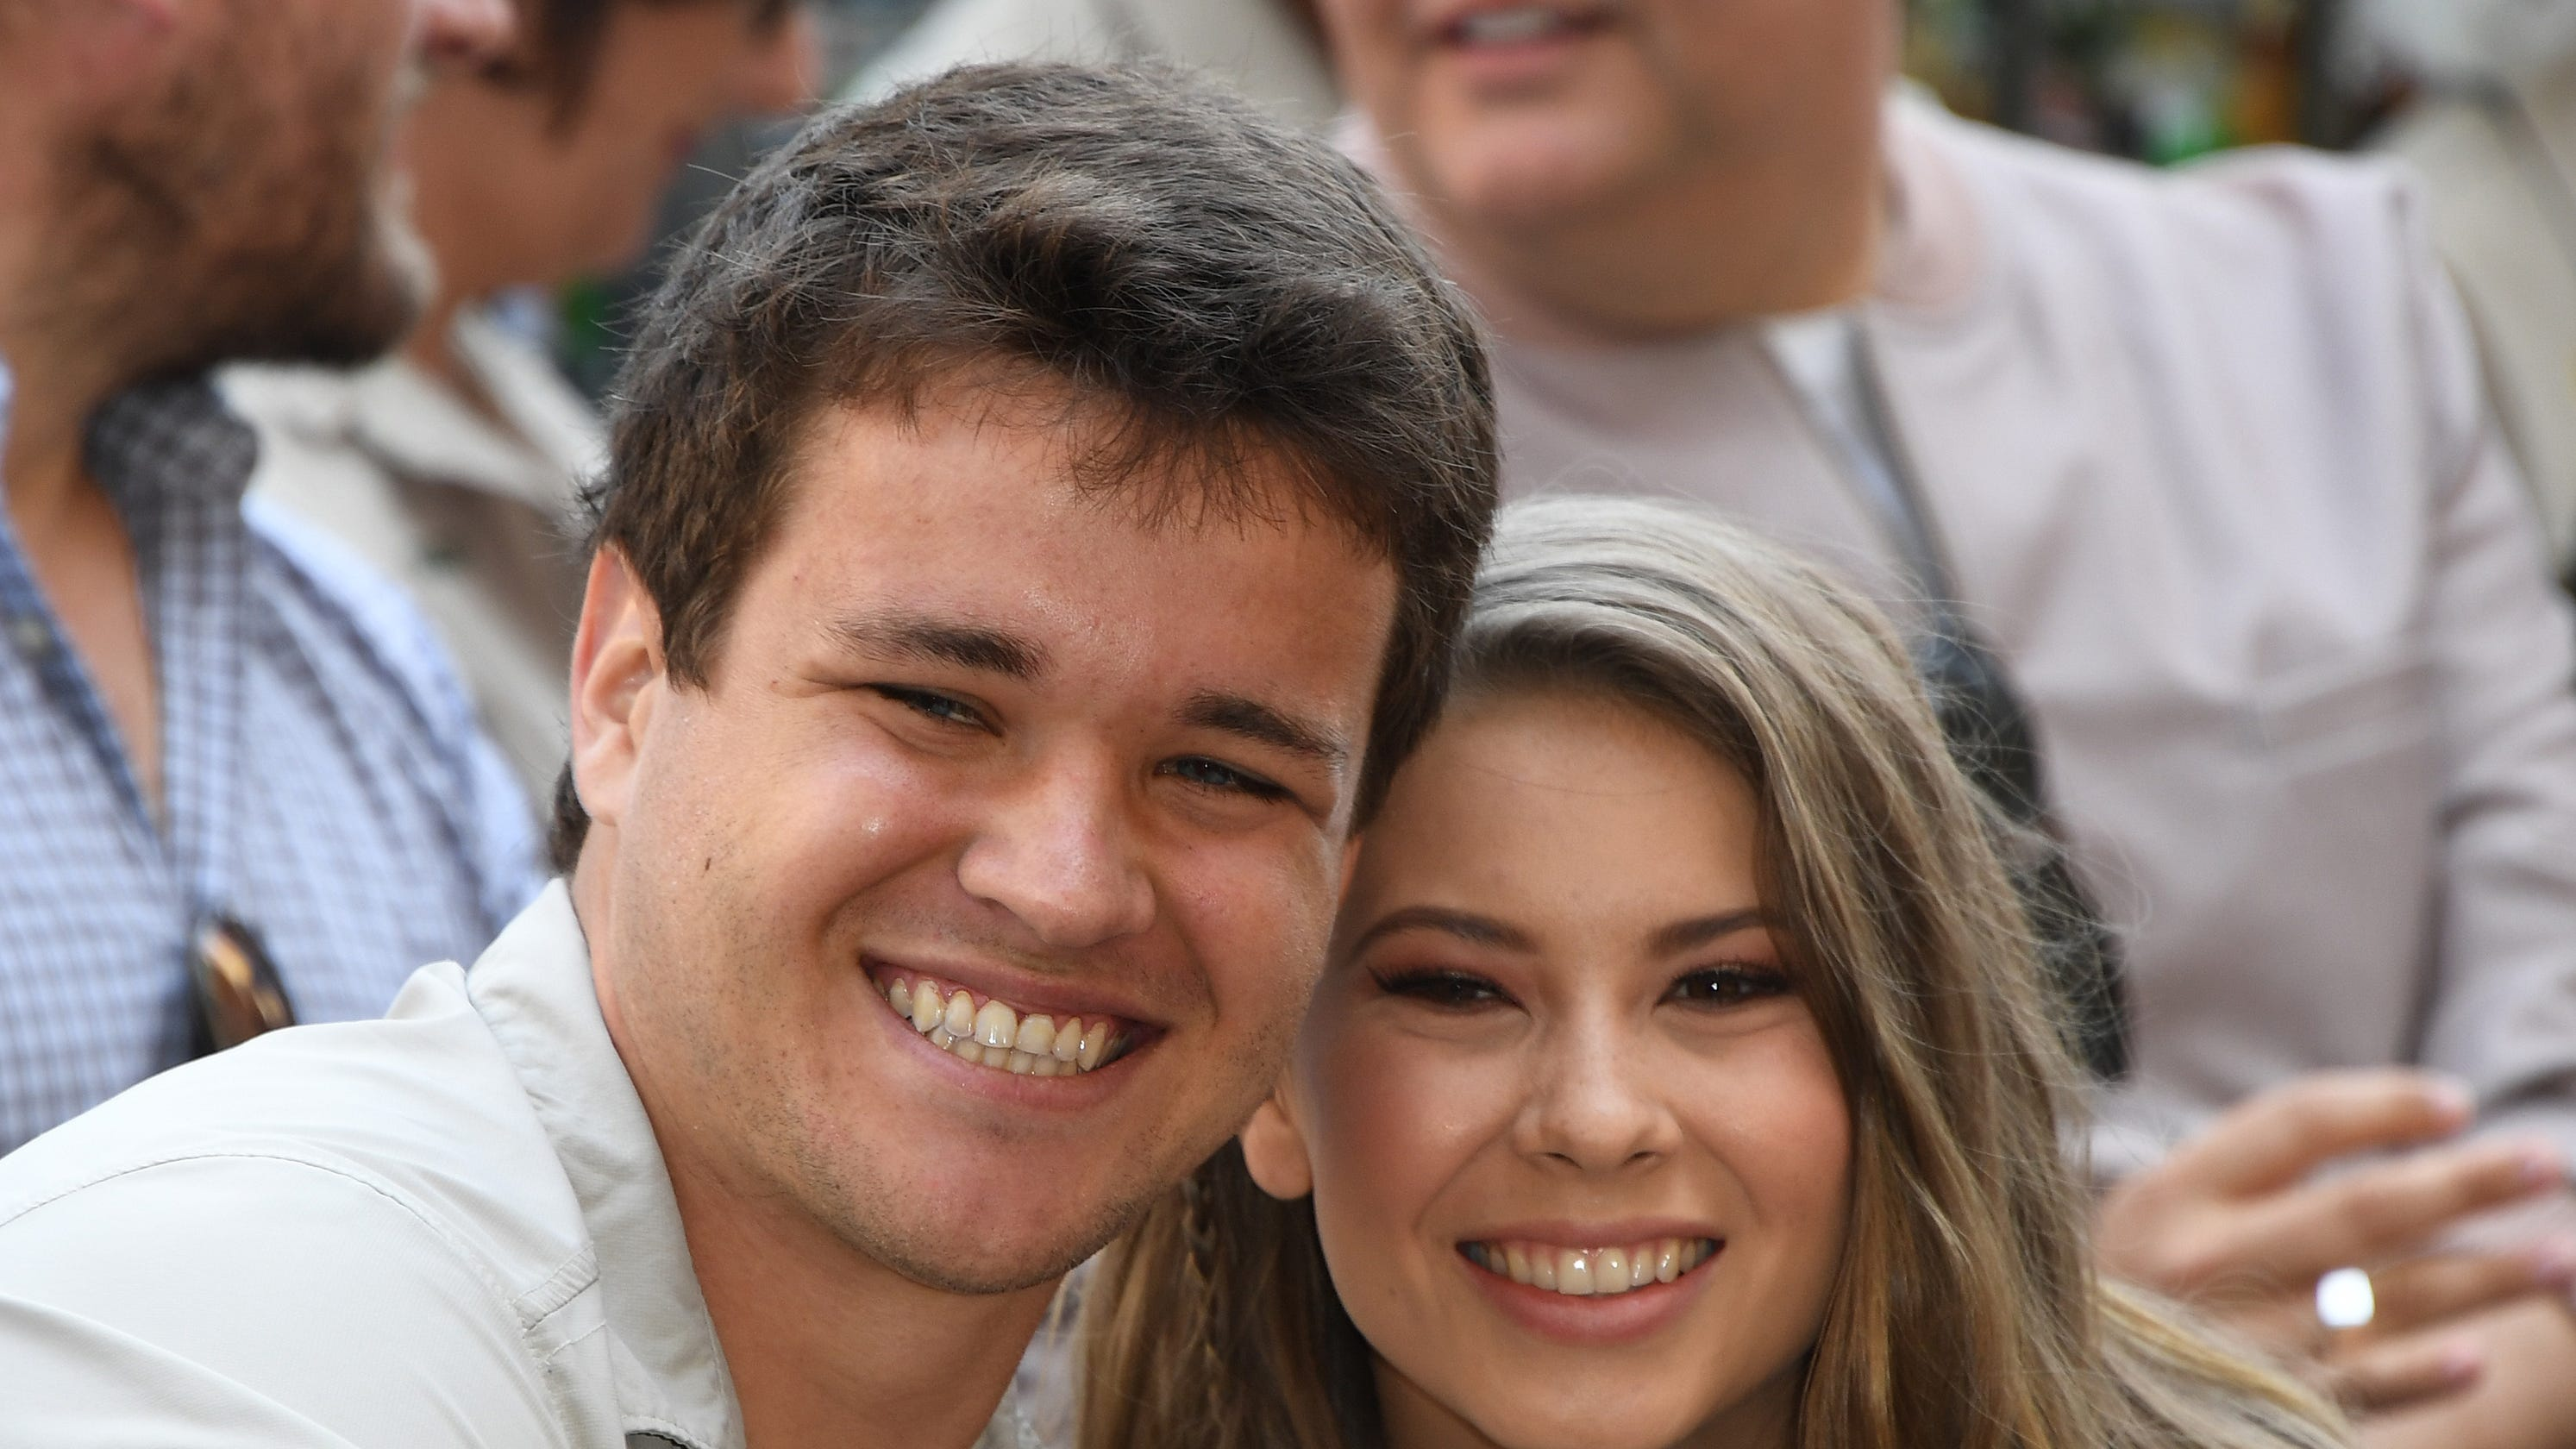 Australia enacts strict gathering policy; Bindi Irwin sneaks in a wedding before it's too late